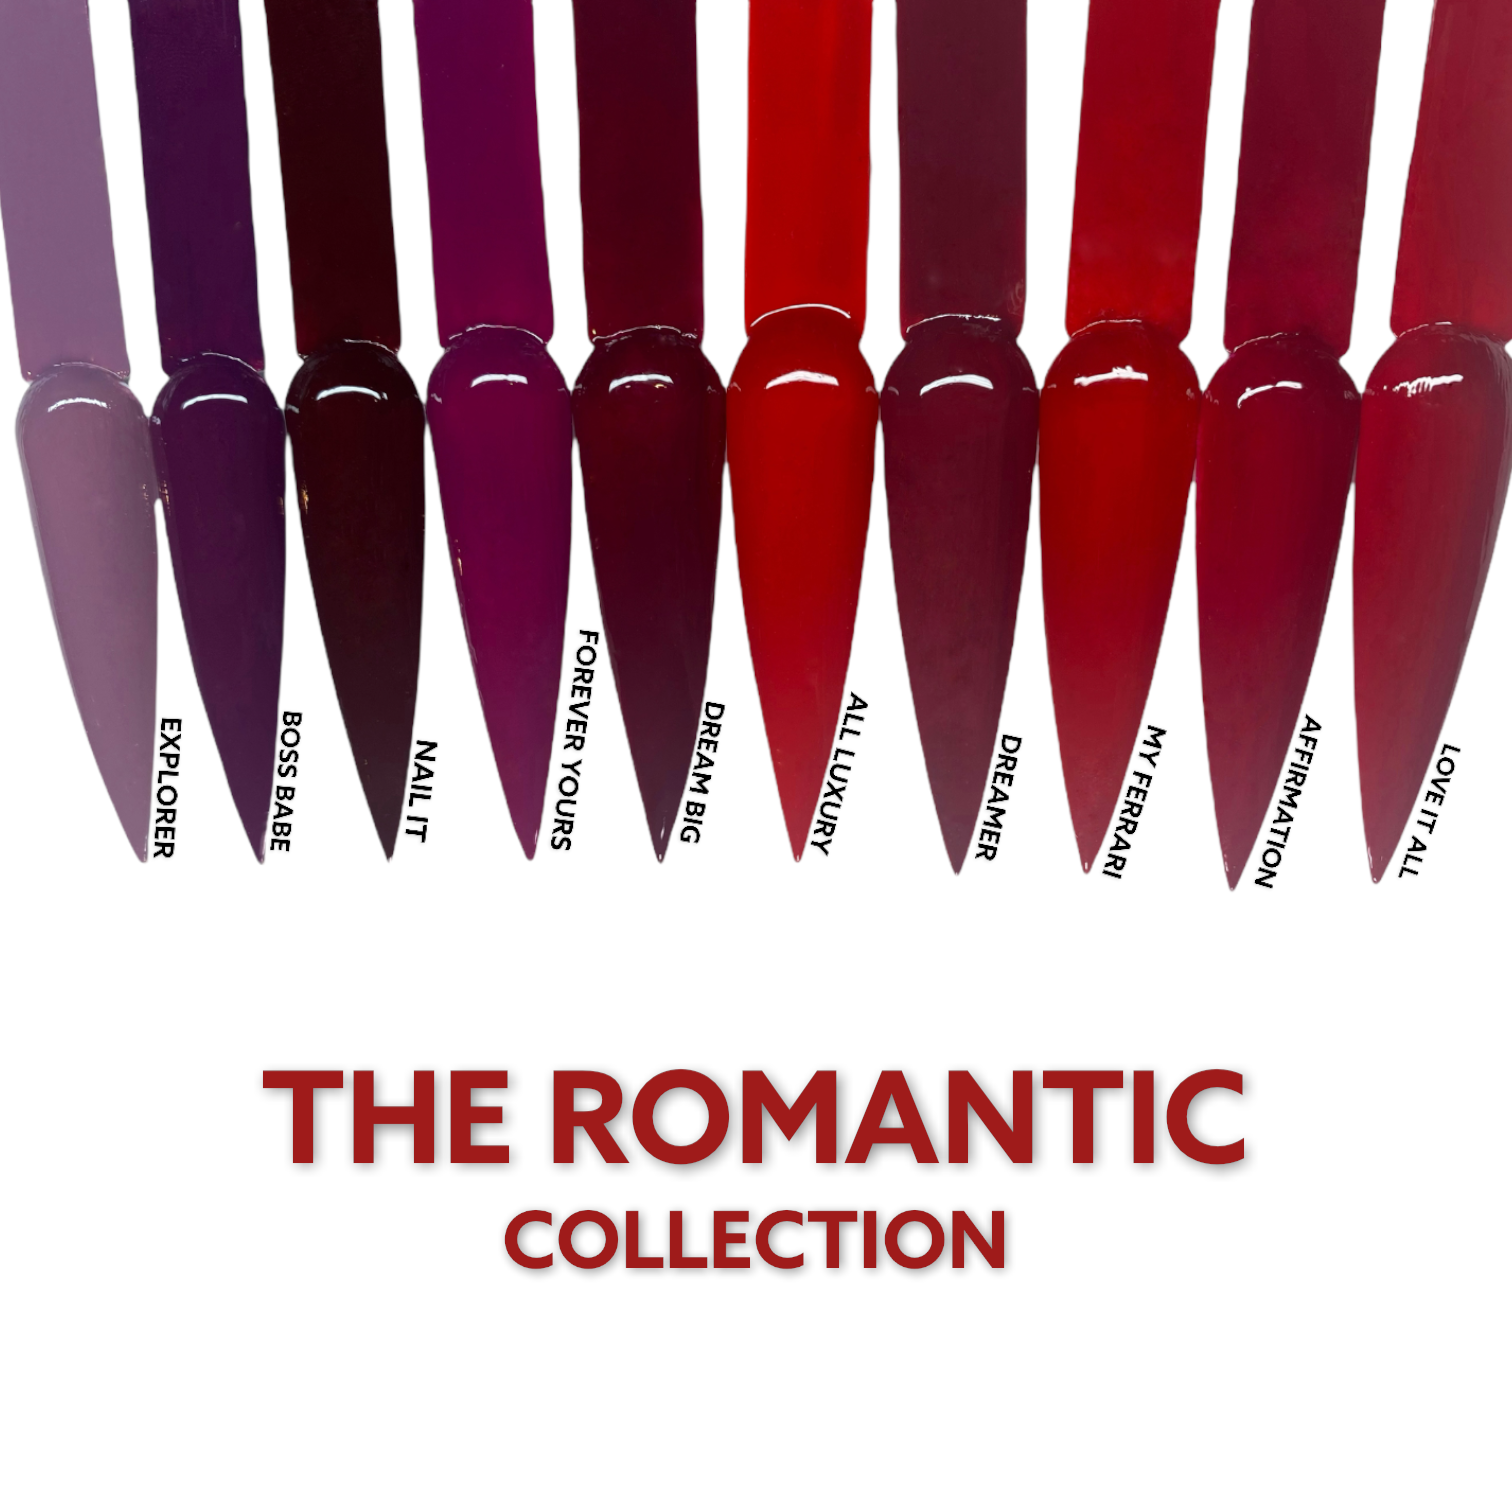 The Romantic Collection